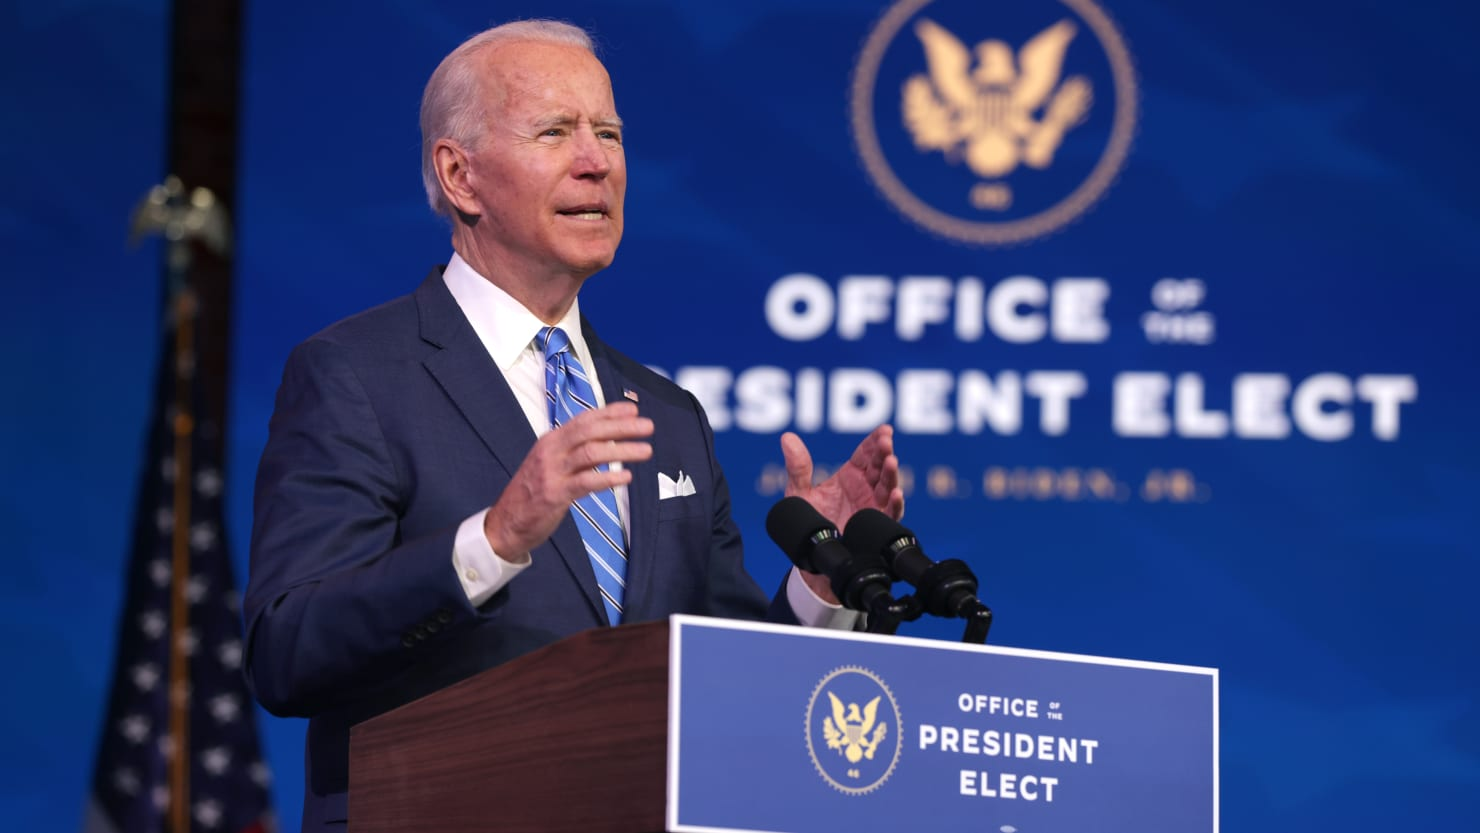 Biden Sidesteps Trump Drama With $1.9T Relief Package